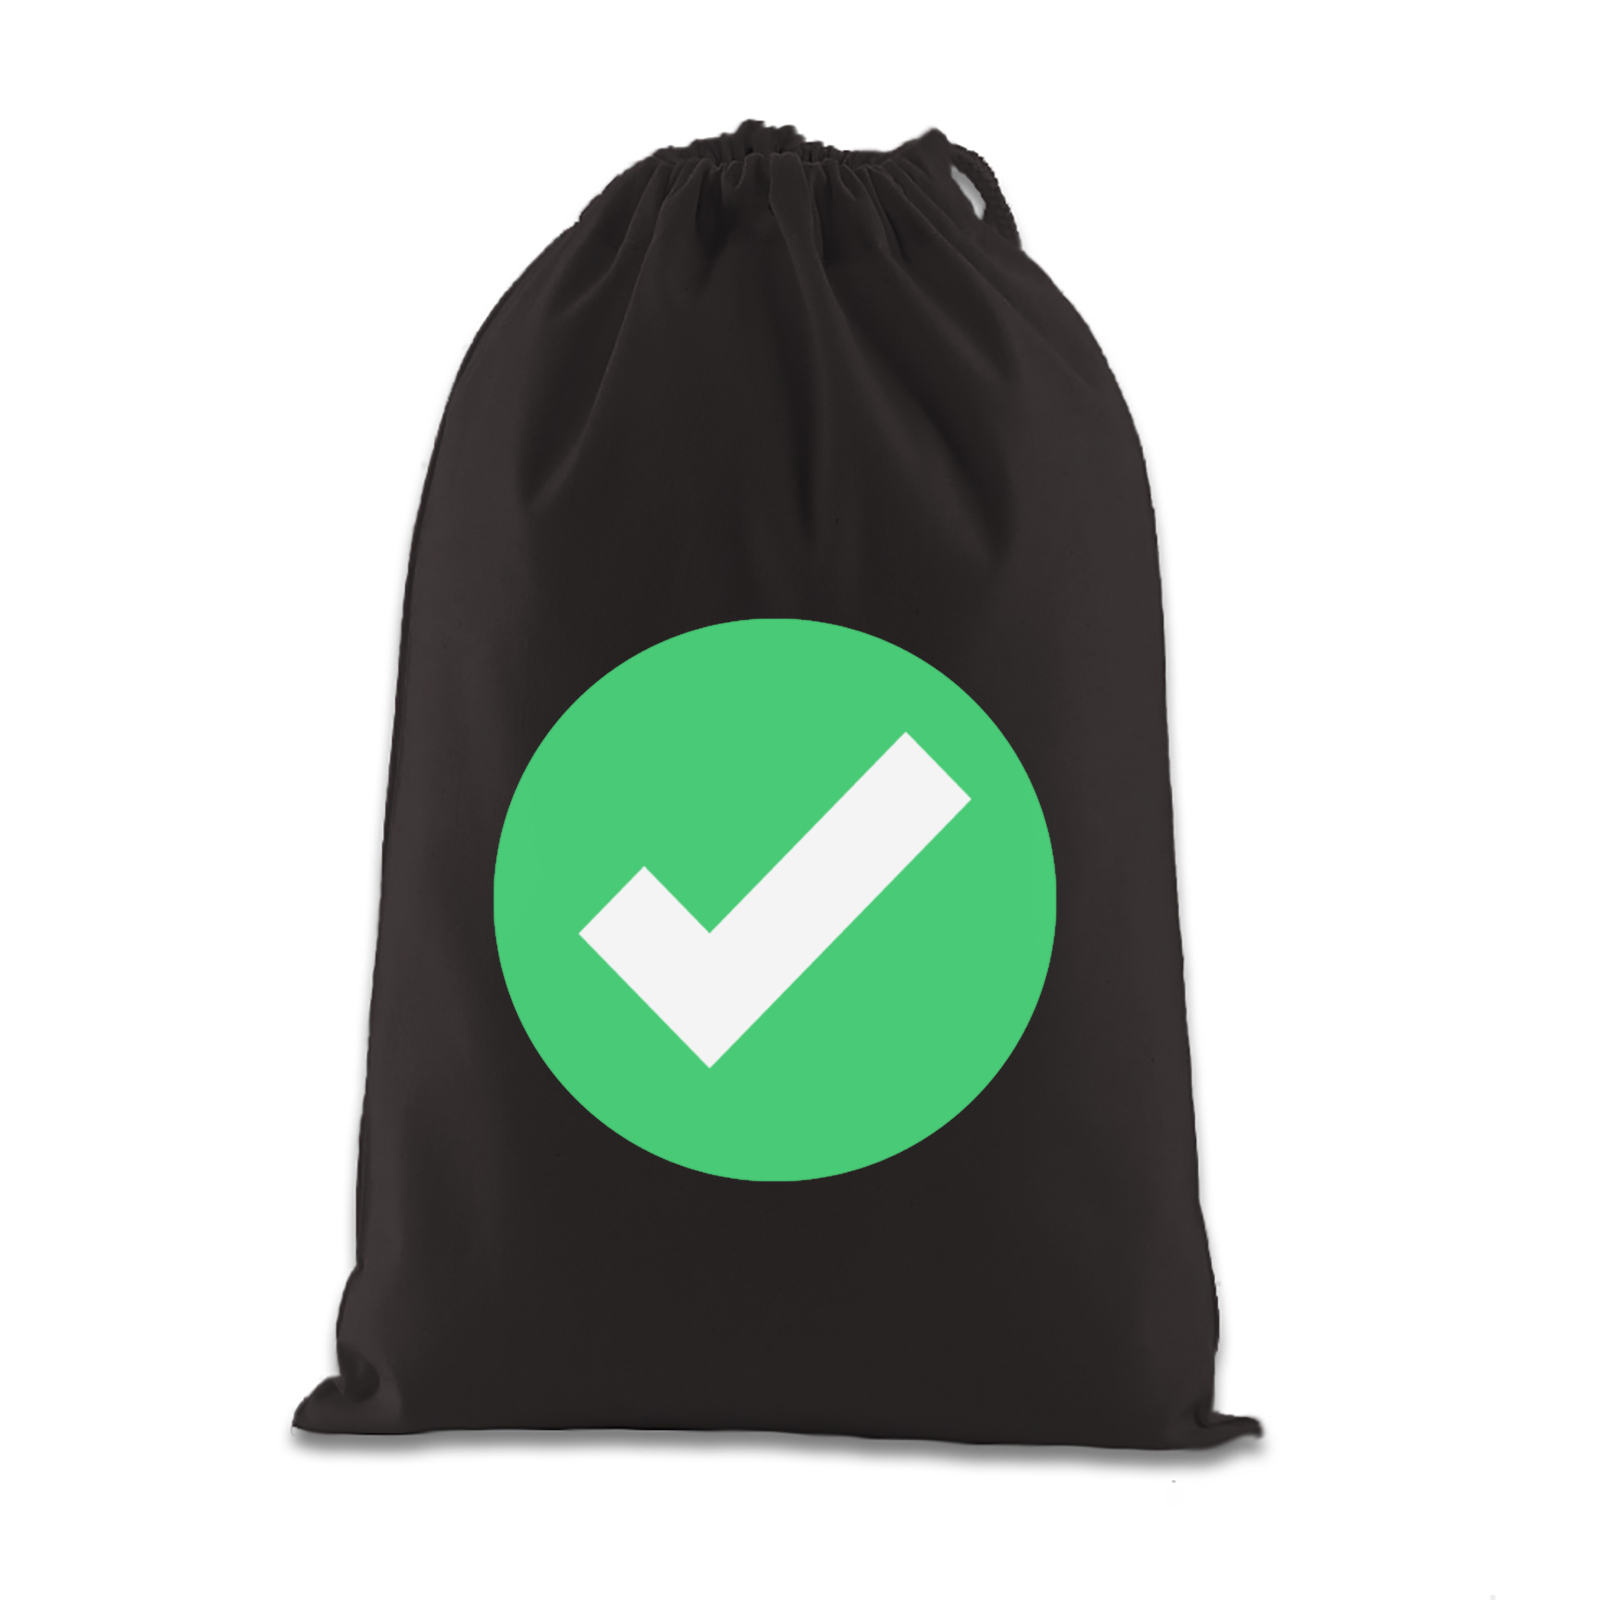 emoji white heavy check mark gift bag available in many colours